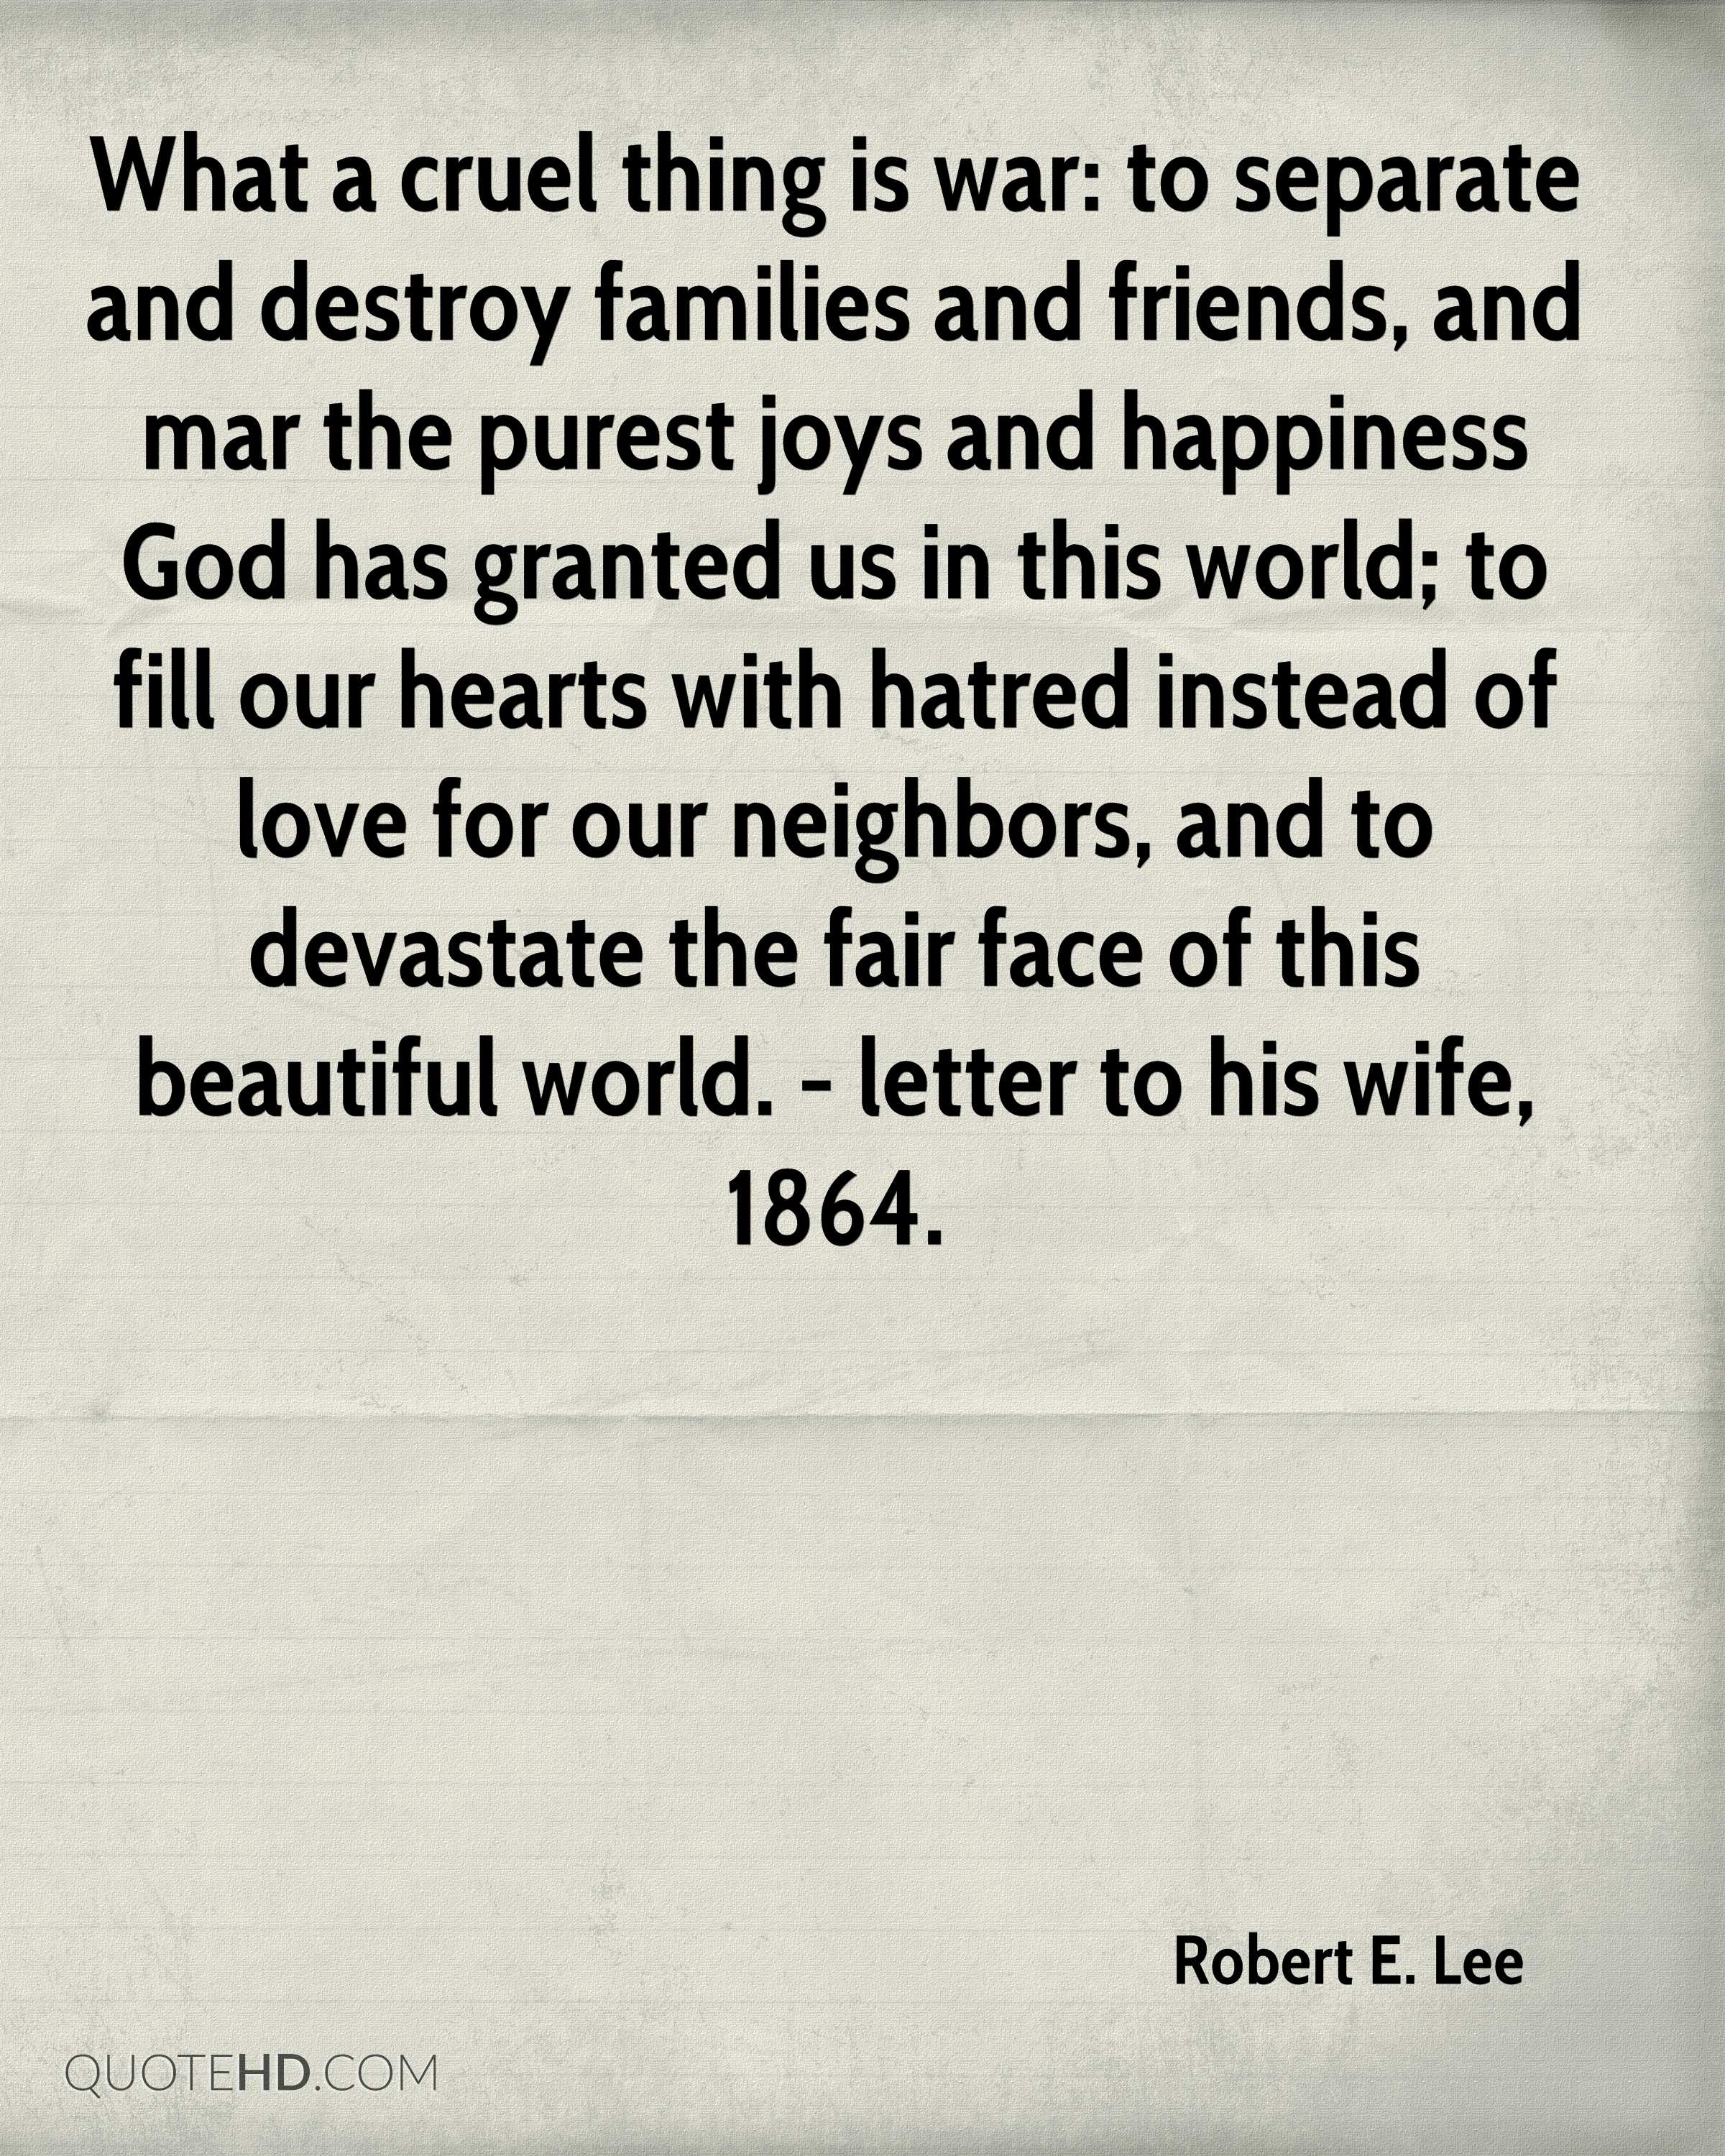 What a cruel thing is war: to separate and destroy families and friends, and mar the purest joys and happiness God has granted us in this world; to fill our hearts with hatred instead of love for our neighbors, and to devastate the fair face of this beautiful world. - letter to his wife, 1864.